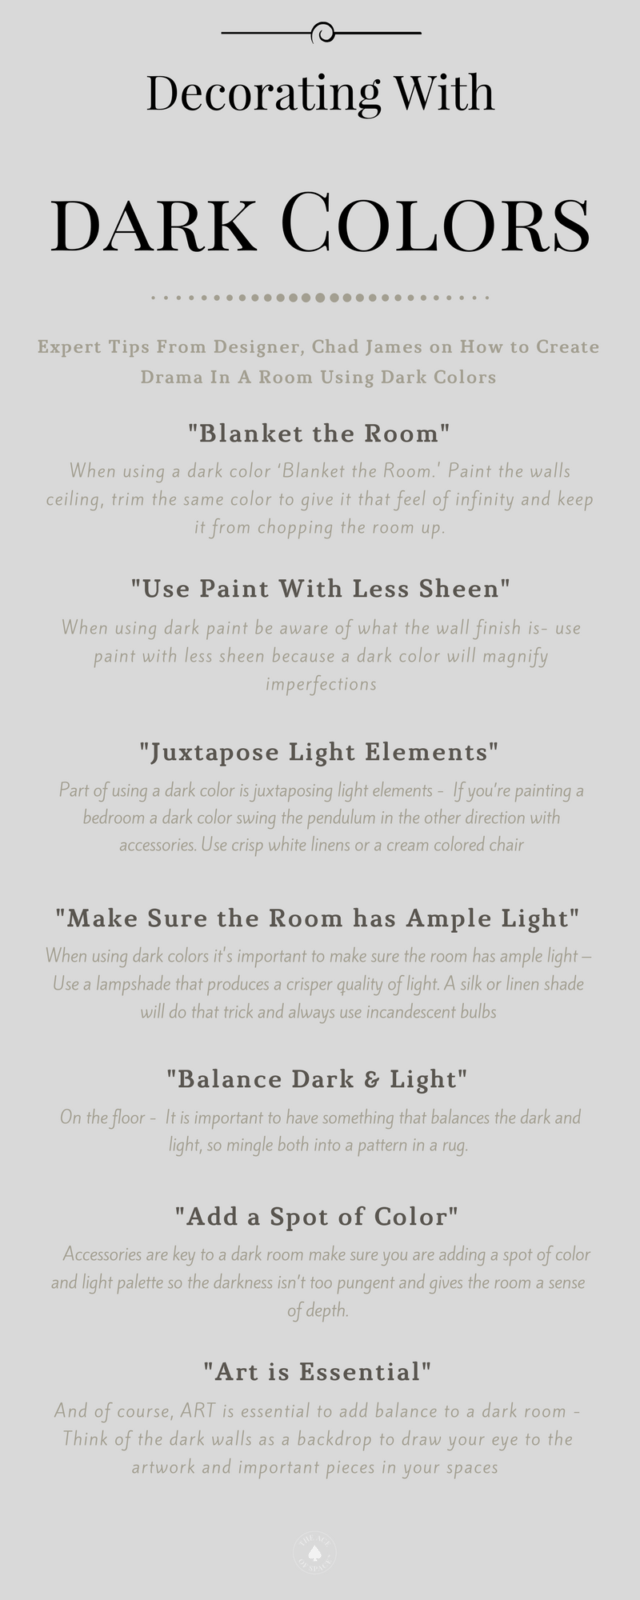 7 Expert Tips For Decorating With Dark Colors, Chad James Group